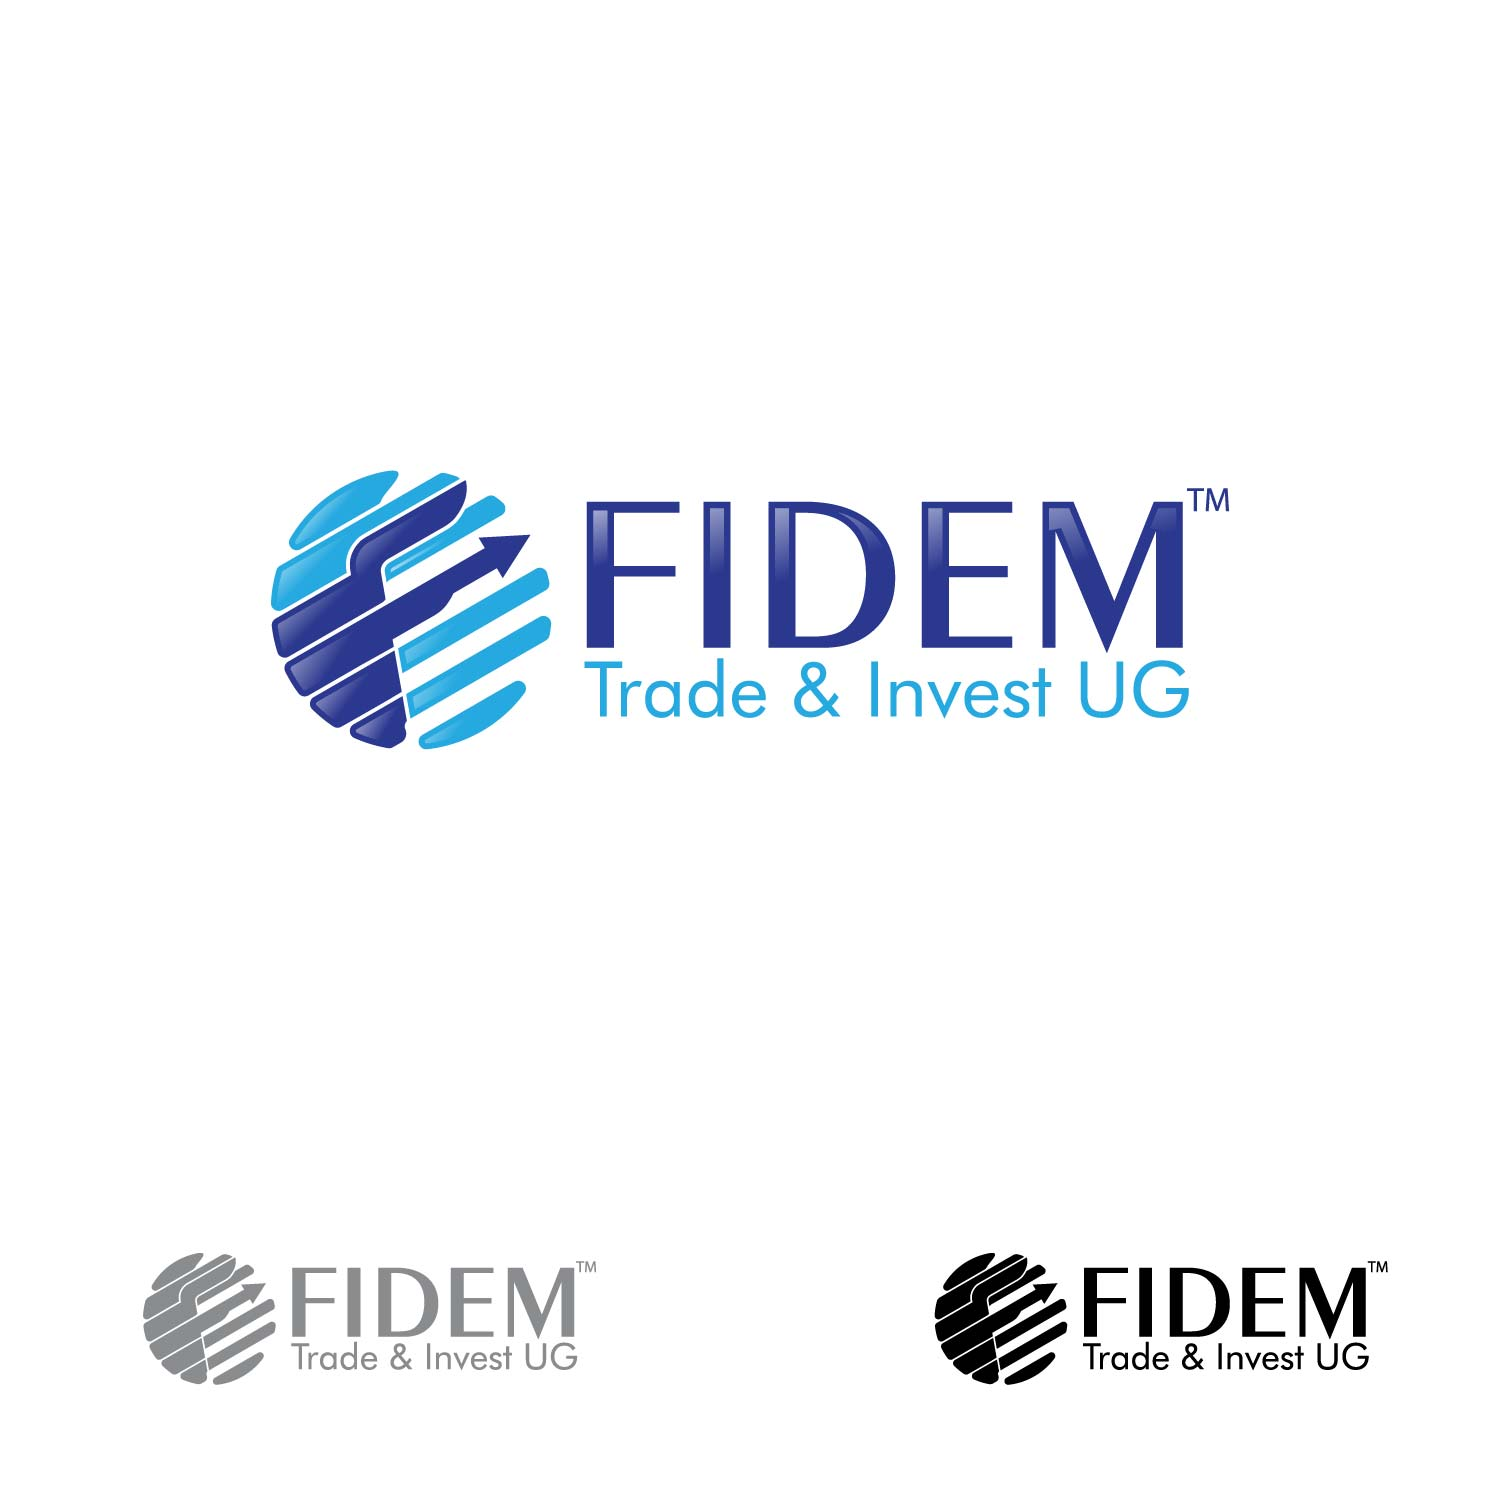 Logo Design by lagalag - Entry No. 107 in the Logo Design Contest Professional Logo Design for FIDEM Trade & Invest UG.